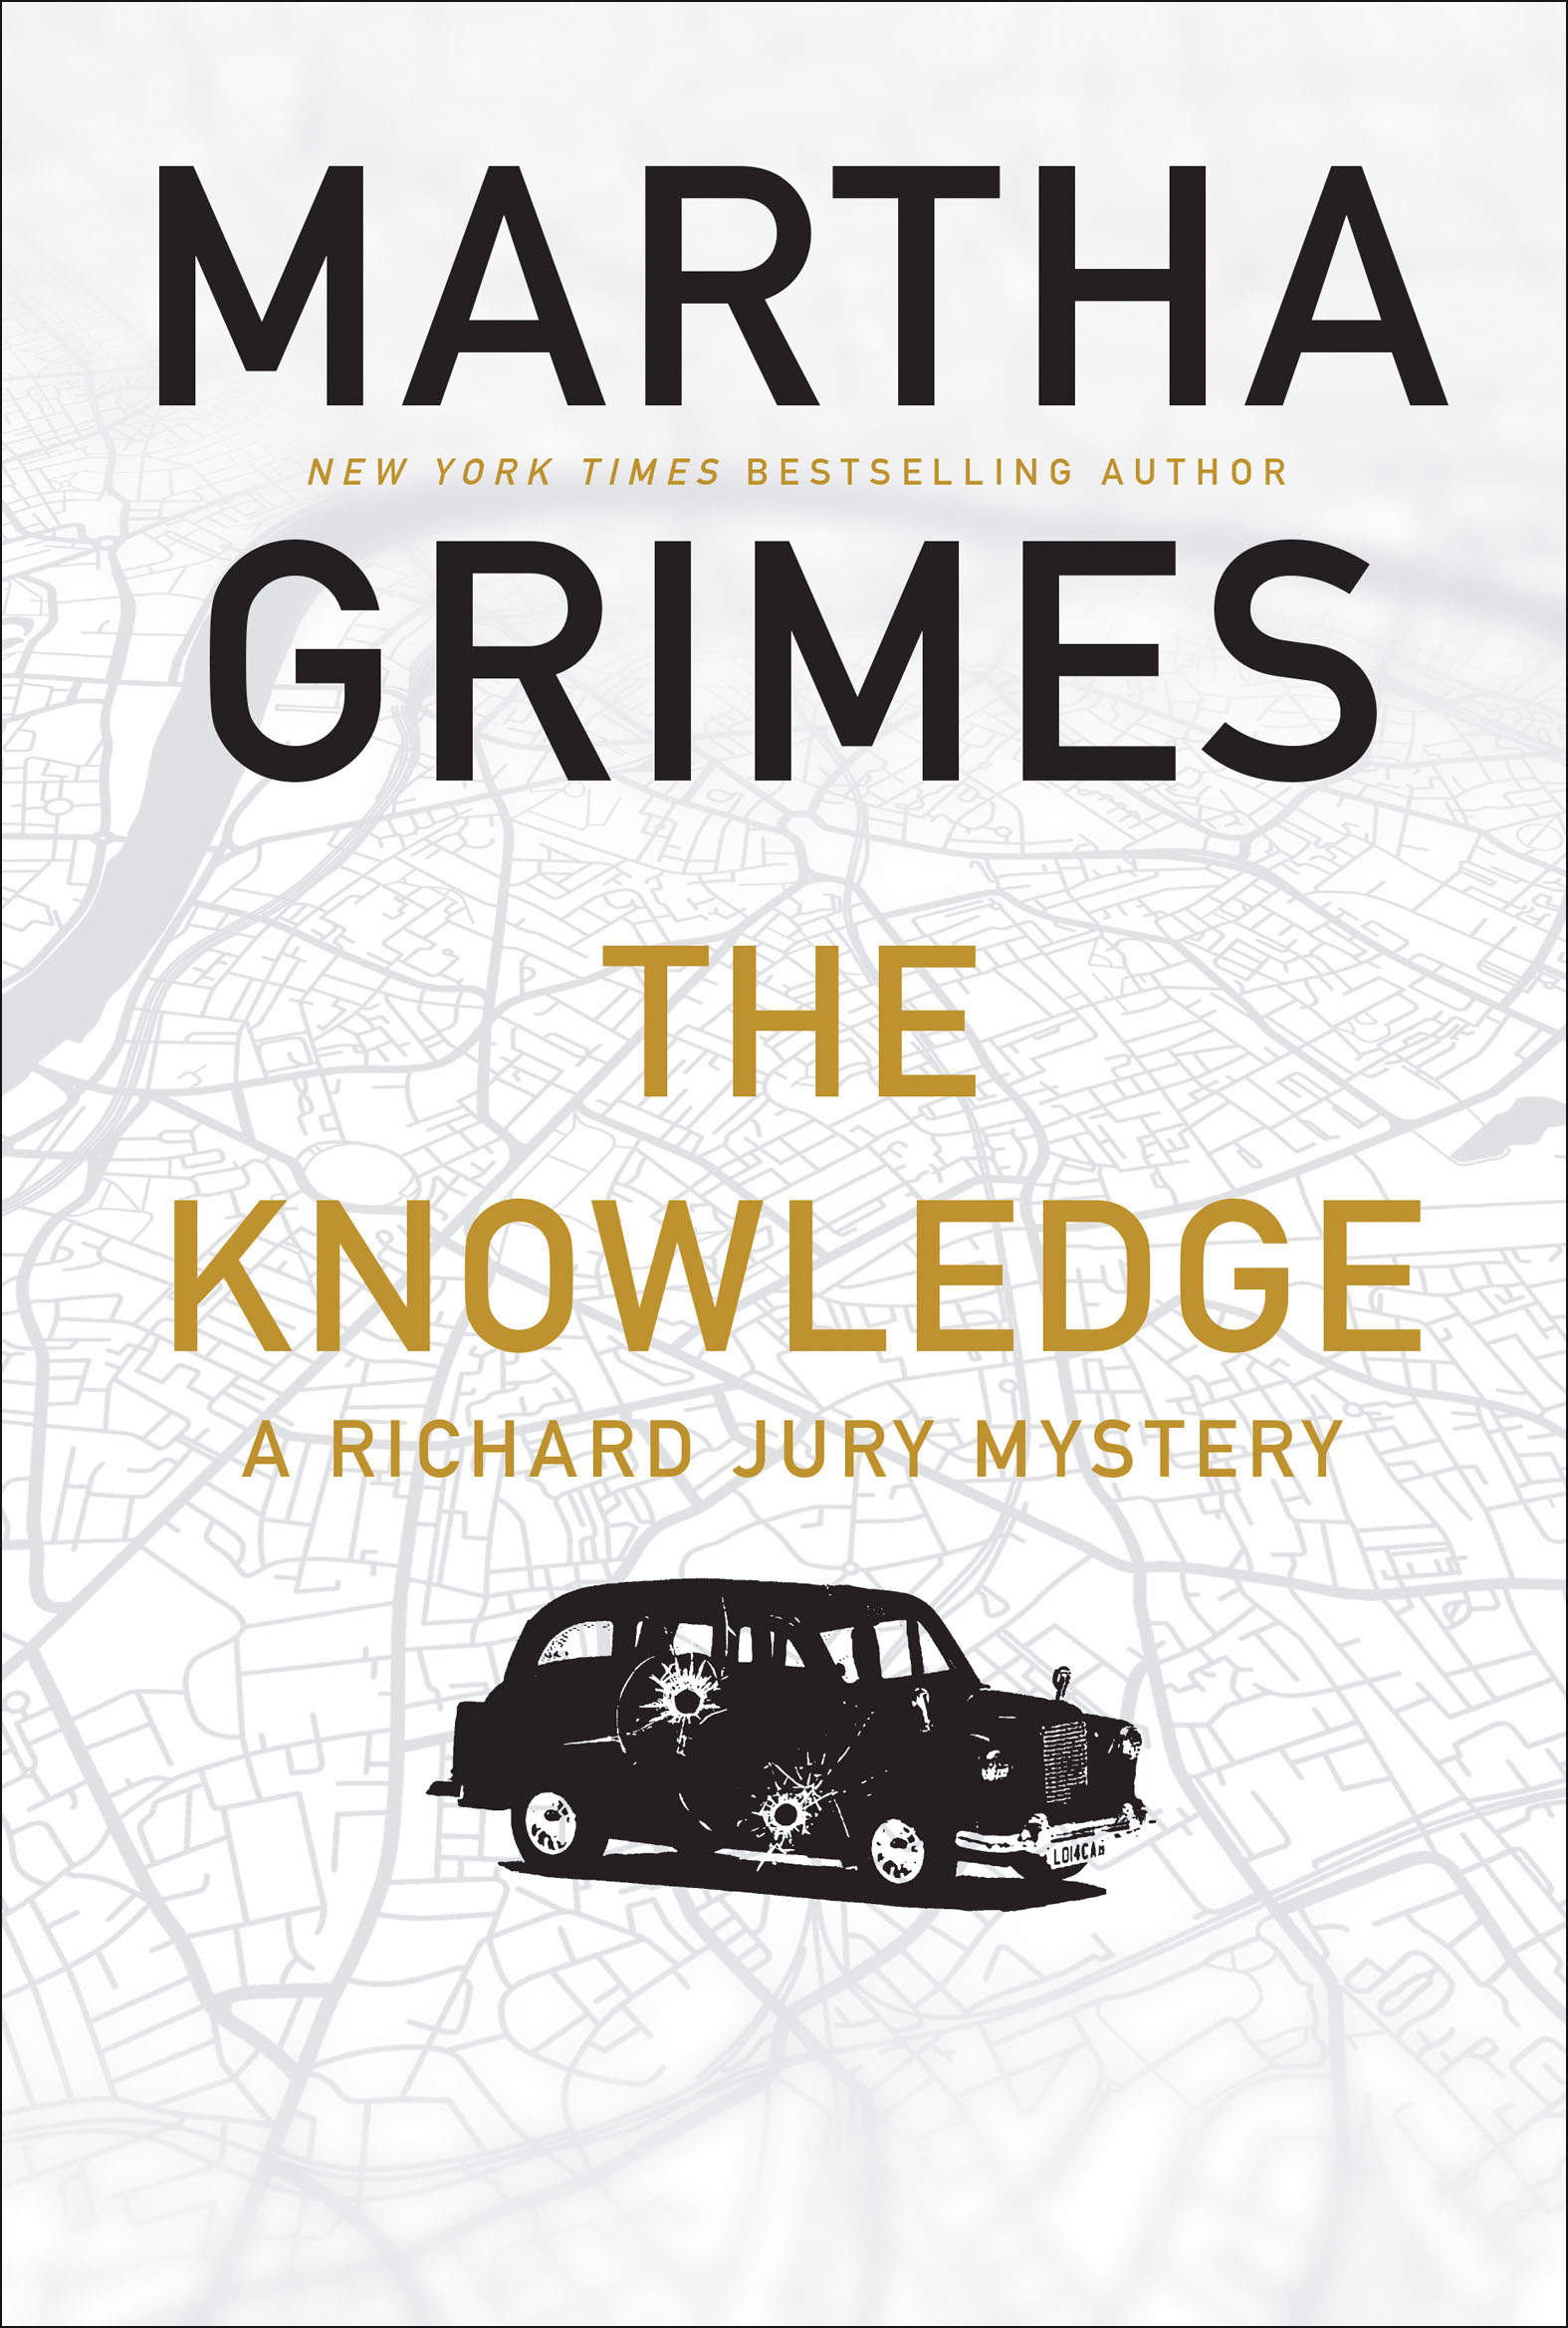 The Knowledge A Richard Jury Mystery